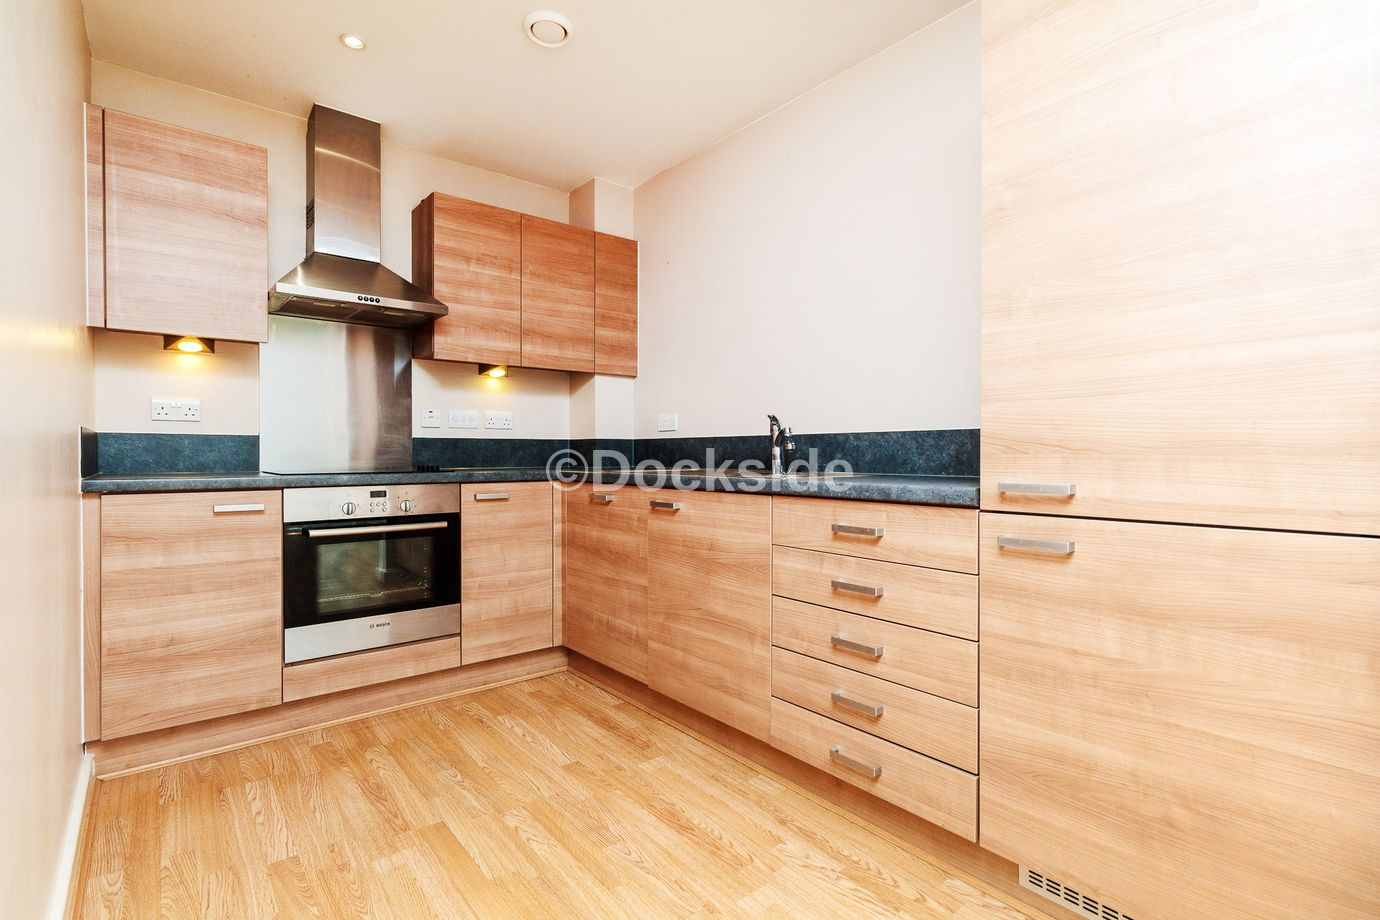 1 bed  for sale in Clovelly Place, DA9